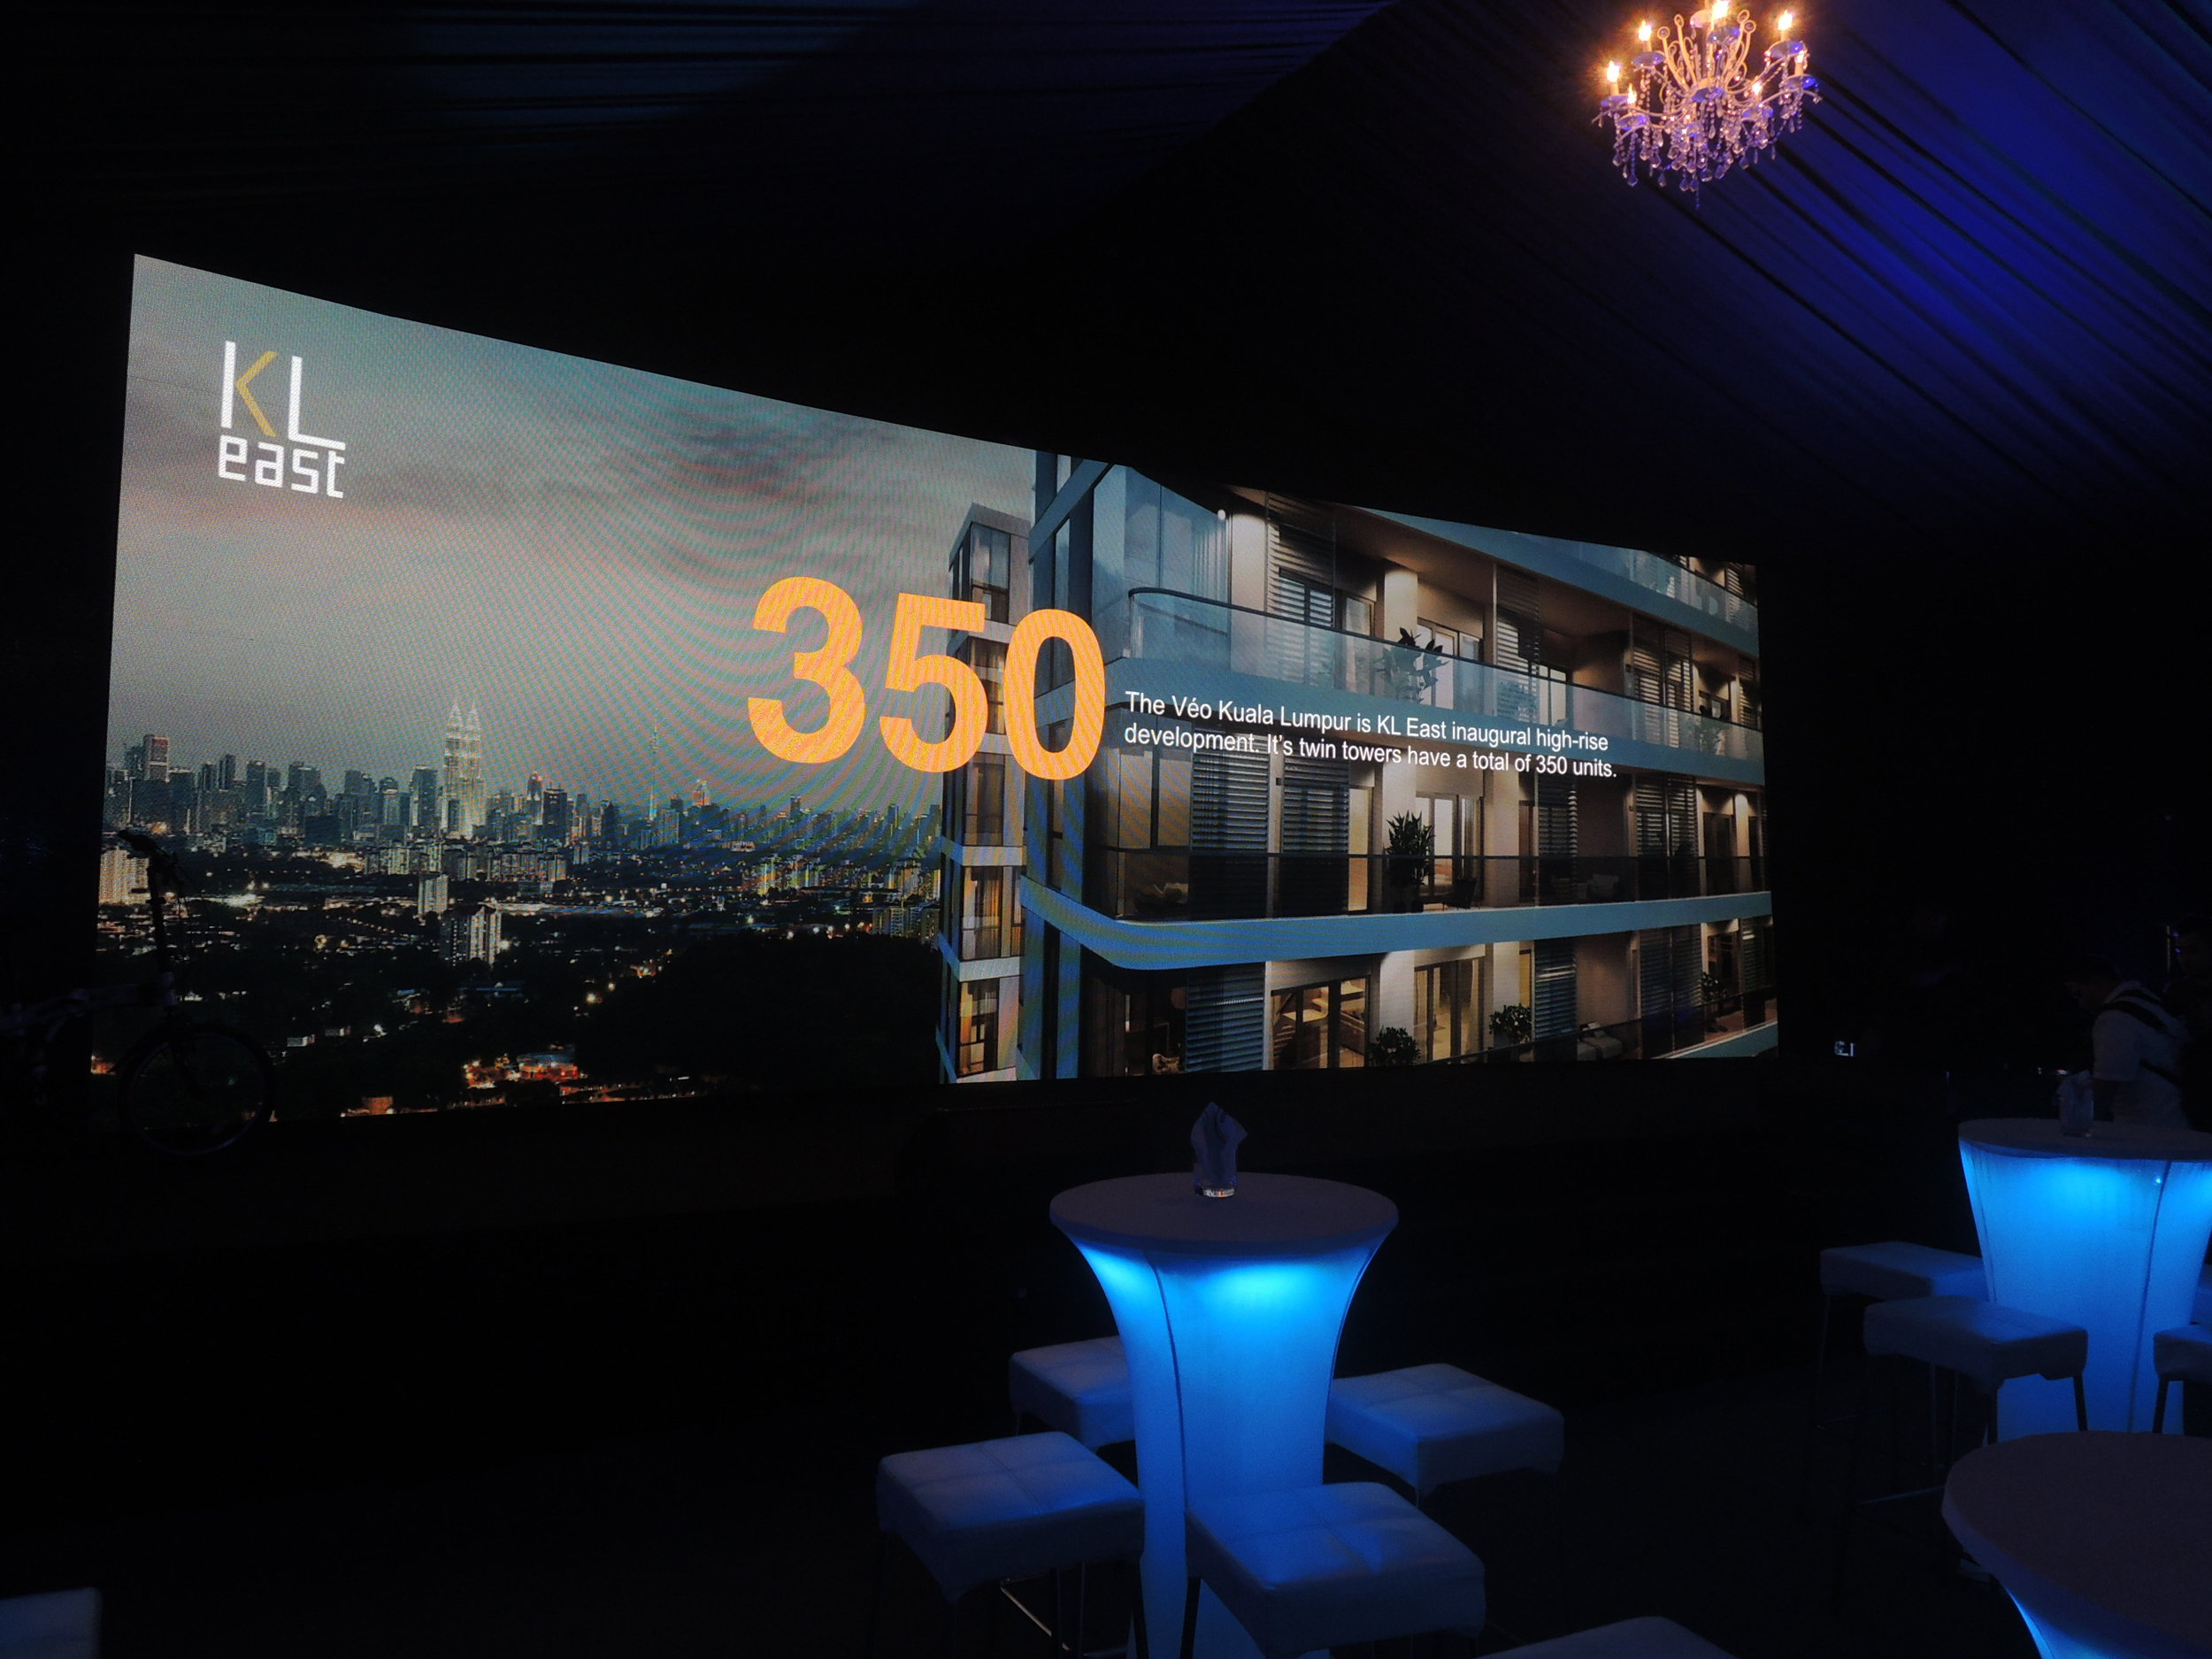 Large-screen video presentation at KL East's launch.